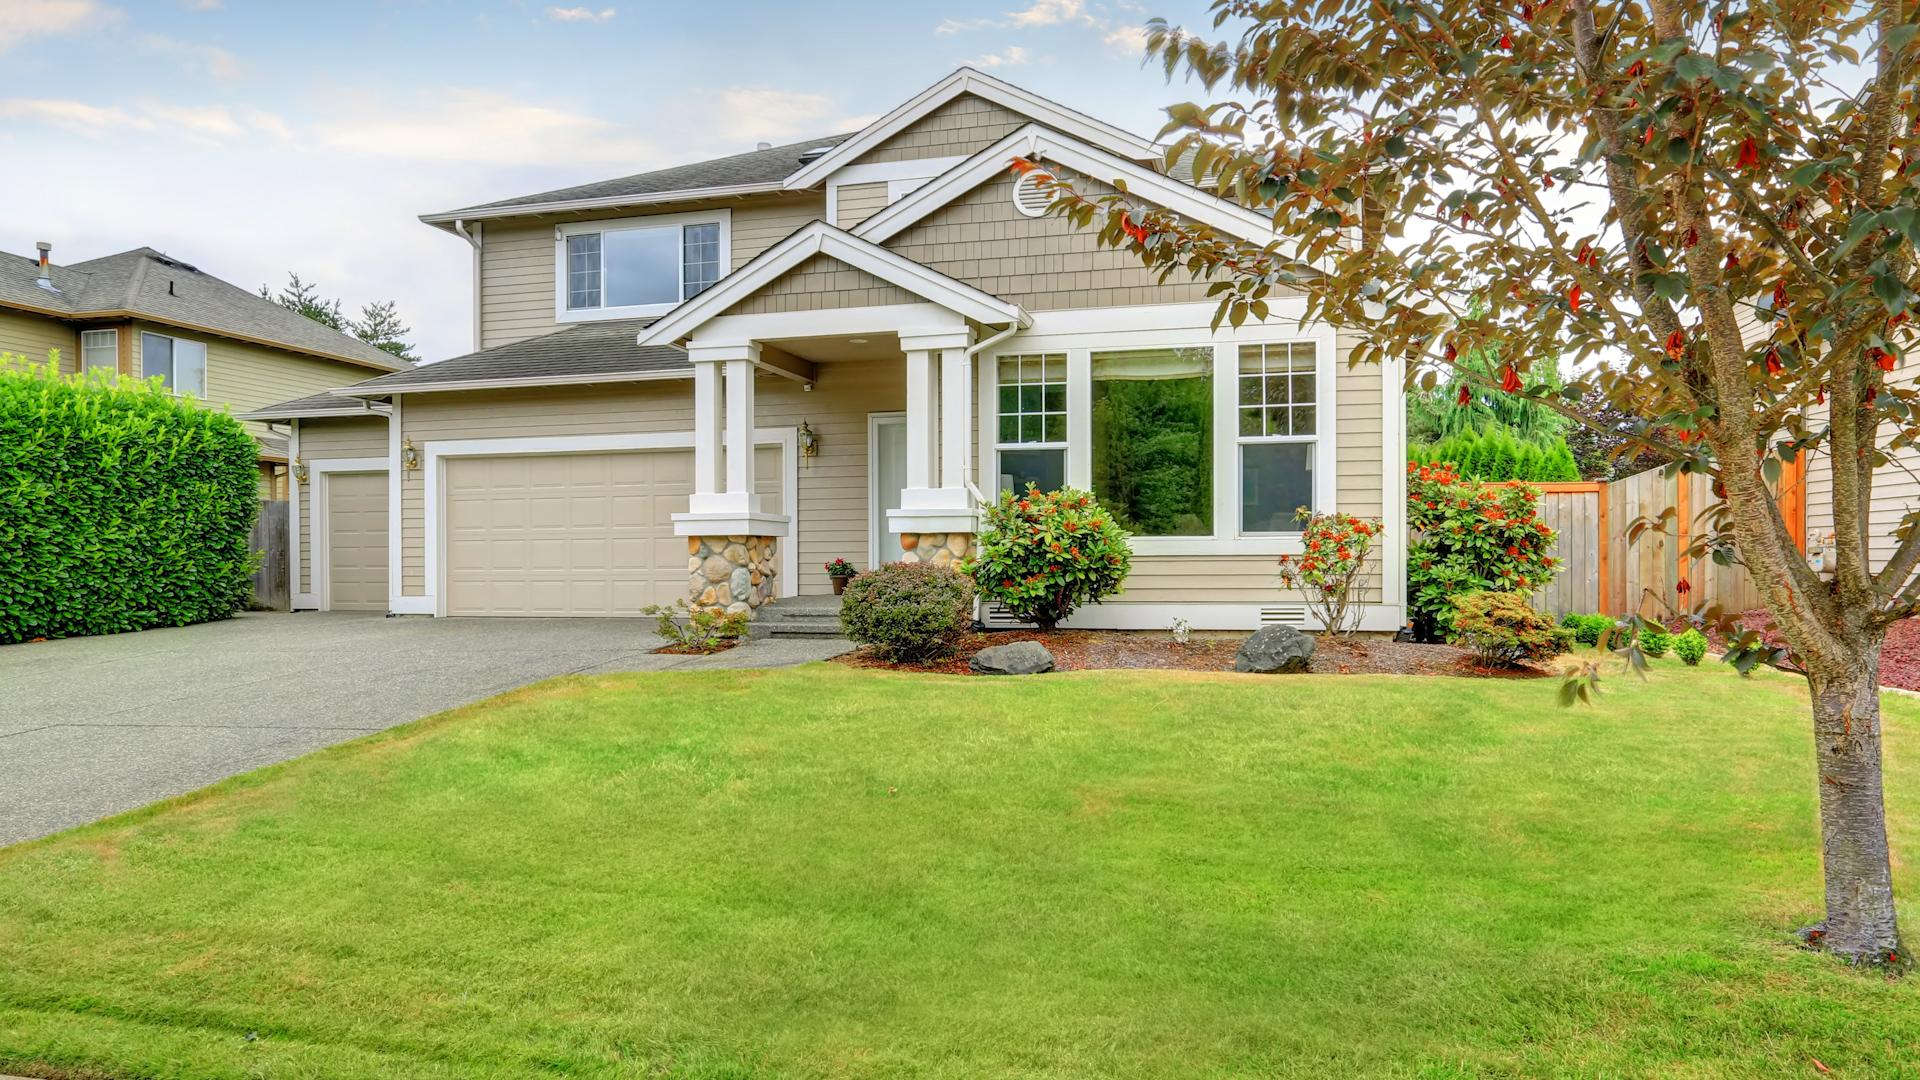 Preferenza Simple Steps to Protect Your Home While You're Away - Consumer Reports EB92